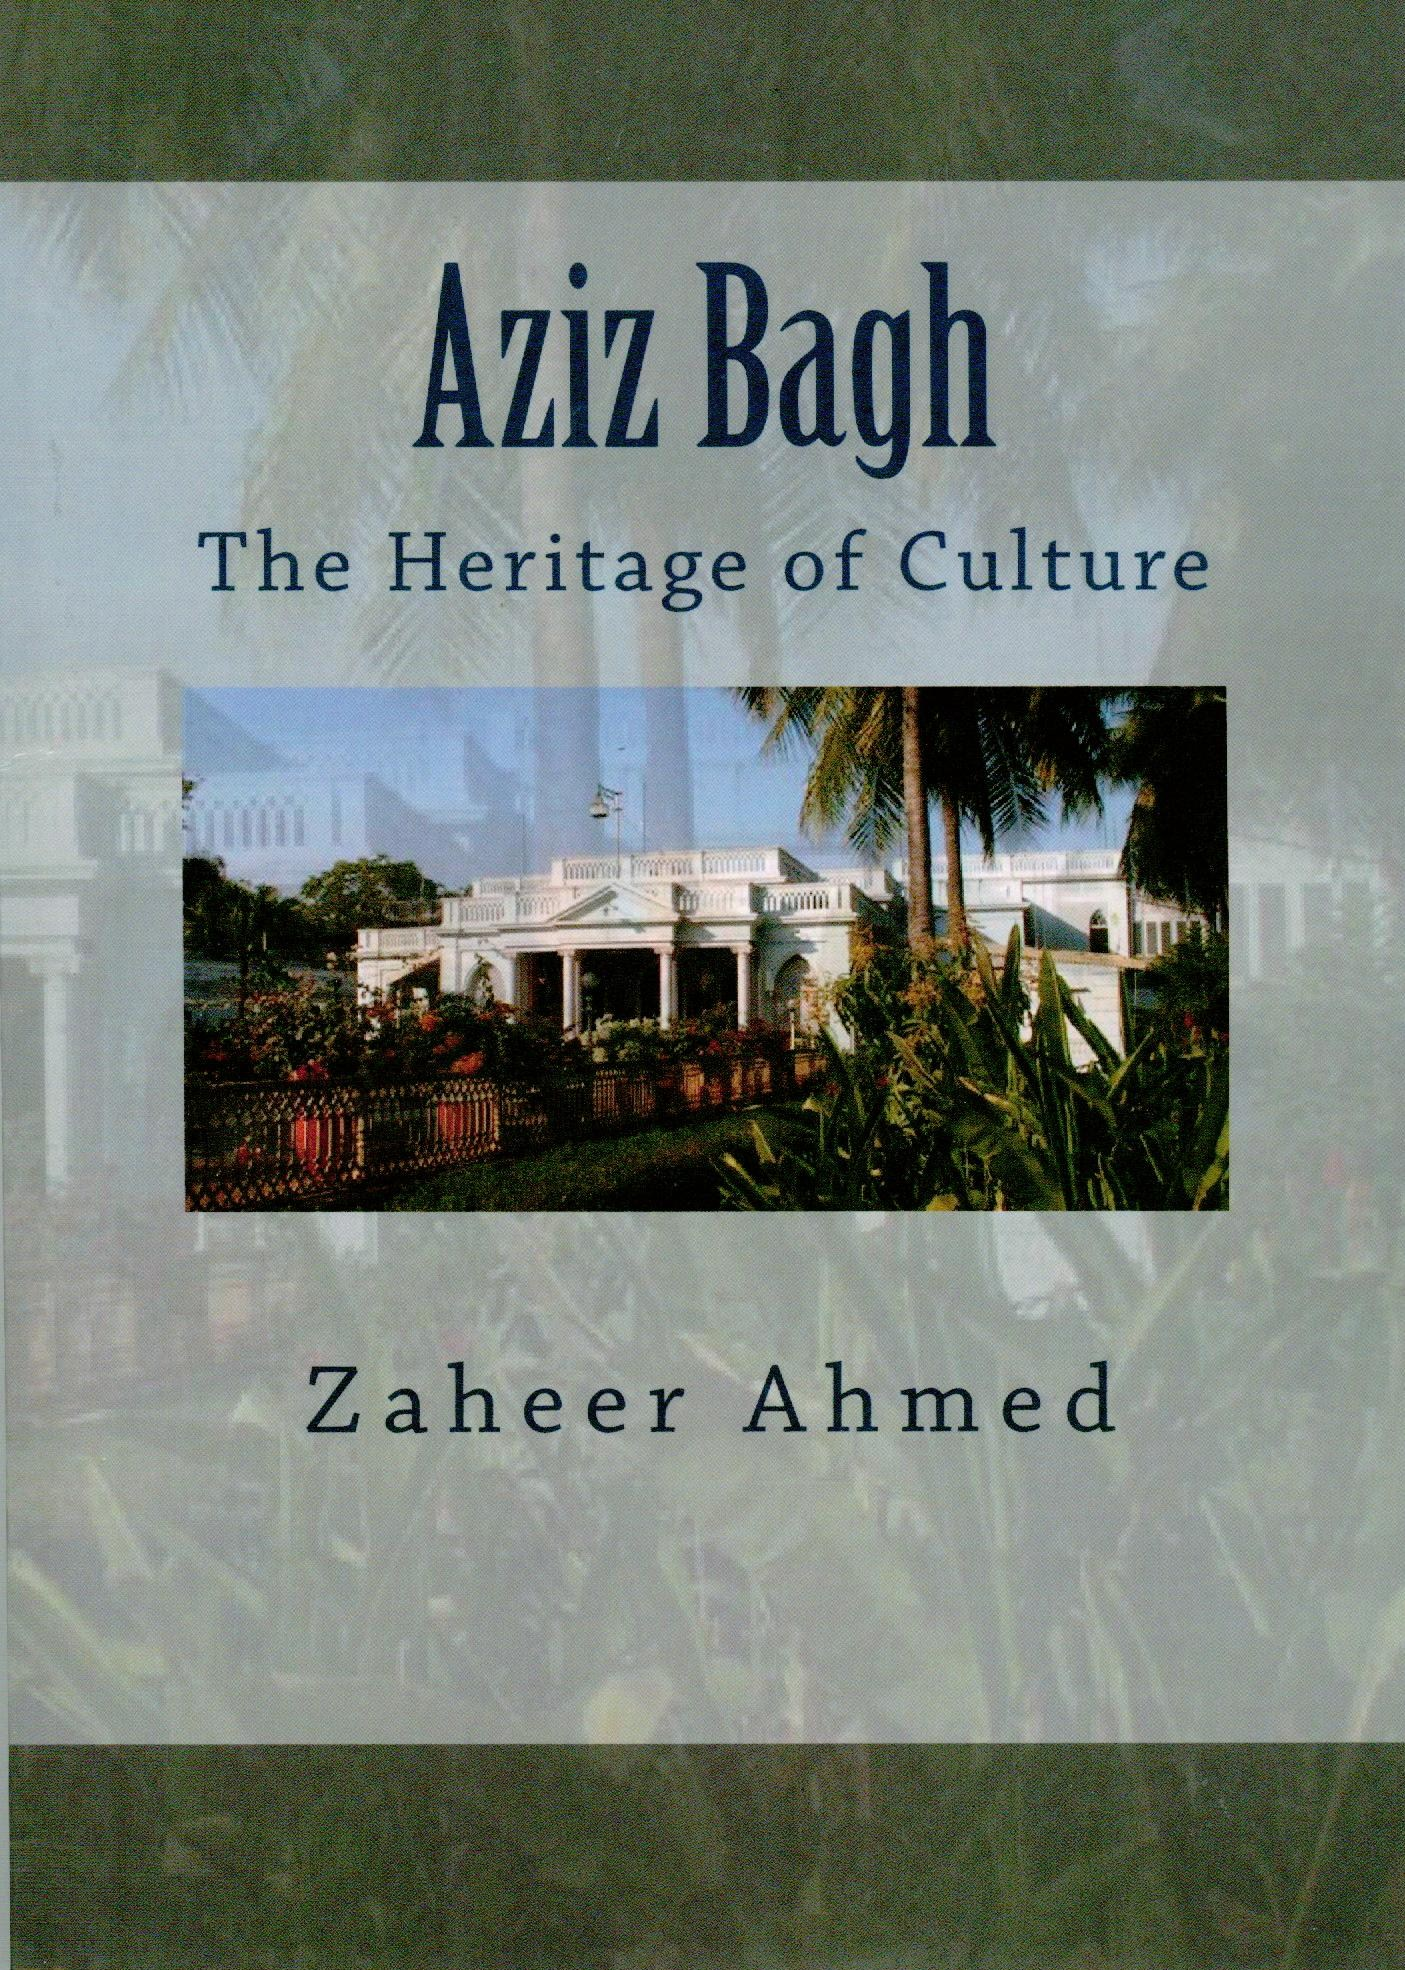 Description: http://www.netnavigate.com/graphics/azizbagh/za6-bookazizbagh.jpg